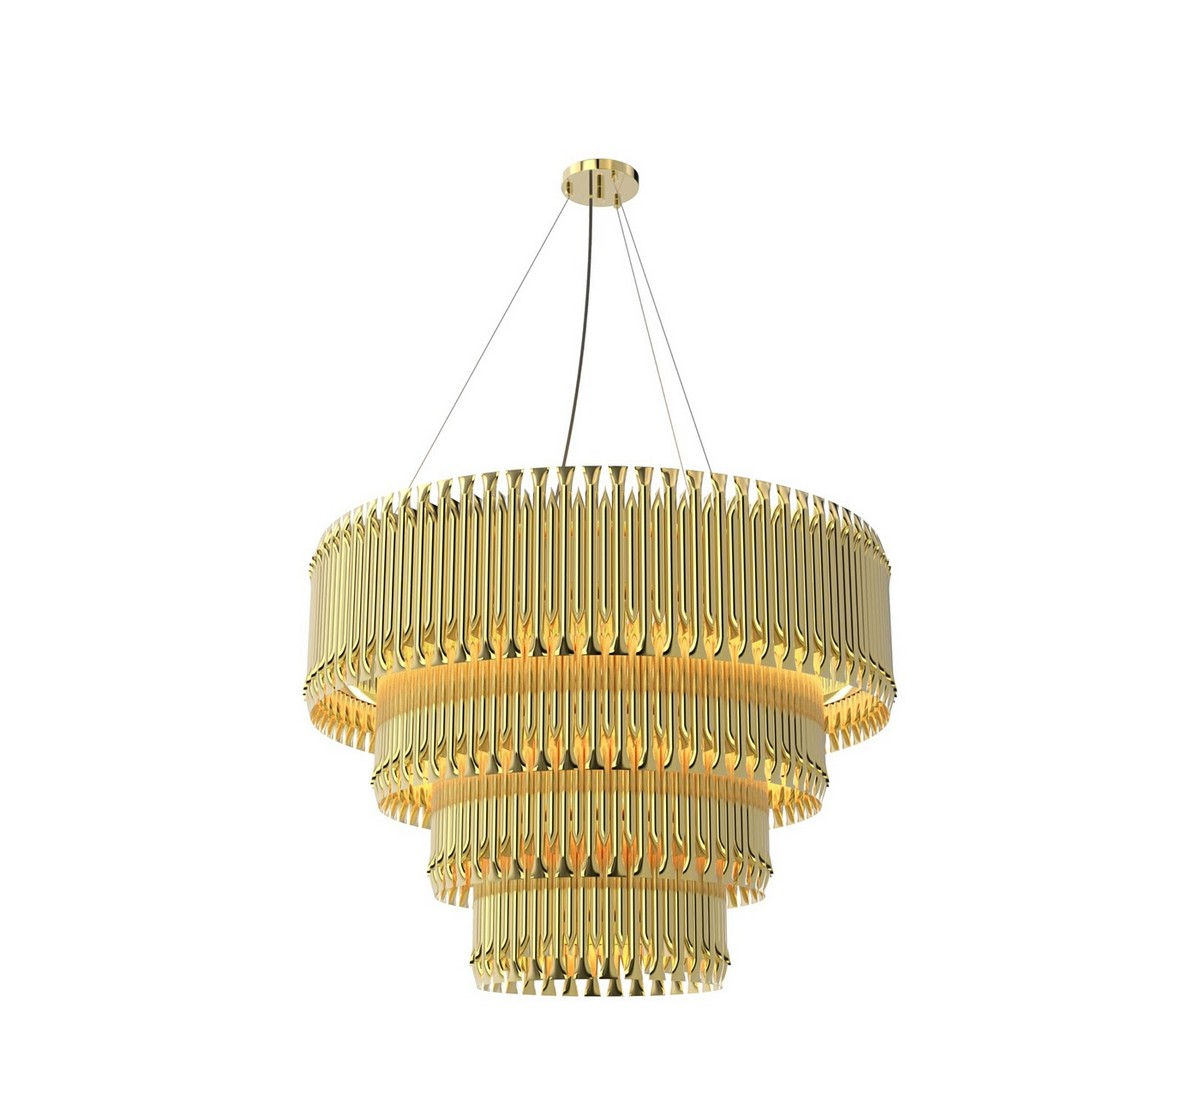 Exclusive Lighting Designs You Will Love (Part III) exclusive lighting designs Exclusive Lighting Designs You Will Love (Part III) matheny2